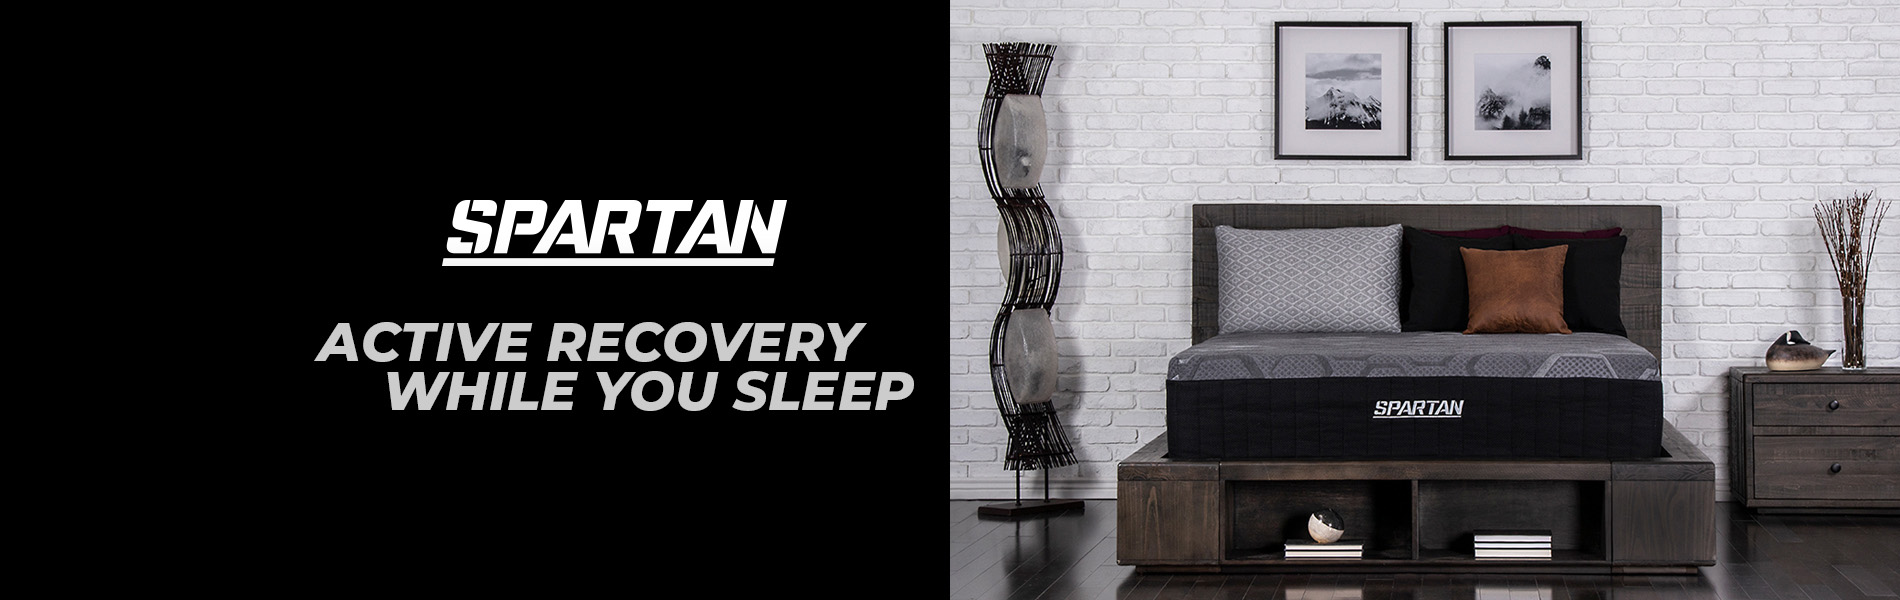 Image with a bed that has text beside it that says: Spartan, active recovery while you sleep.